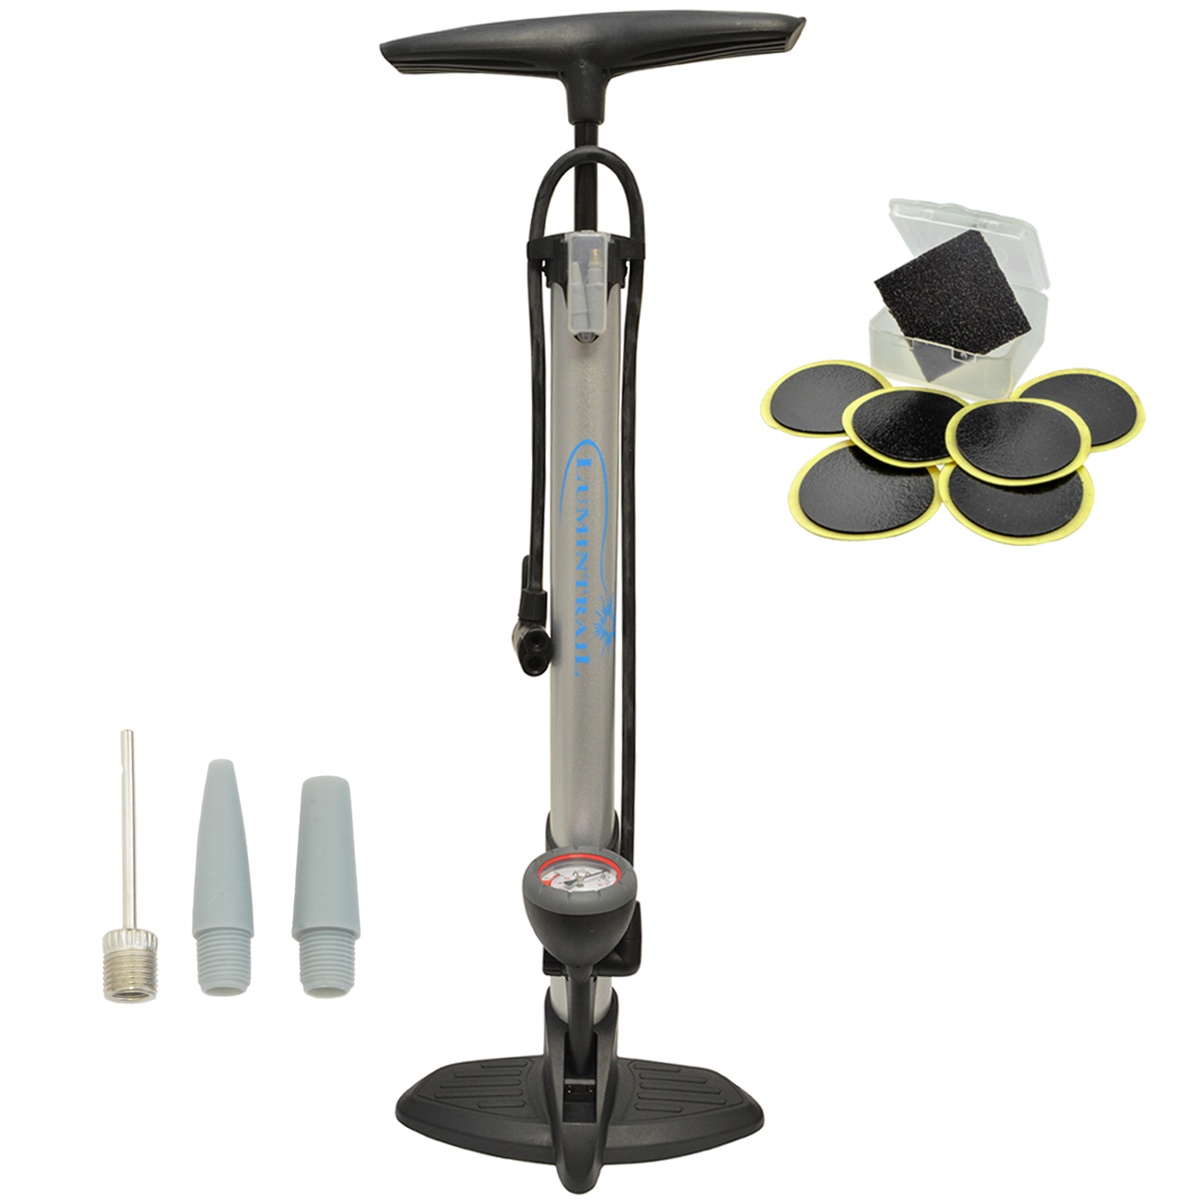 BoG Products Bicycle Floor Pump with Pressure Gauge for Presta /& Schrader val...